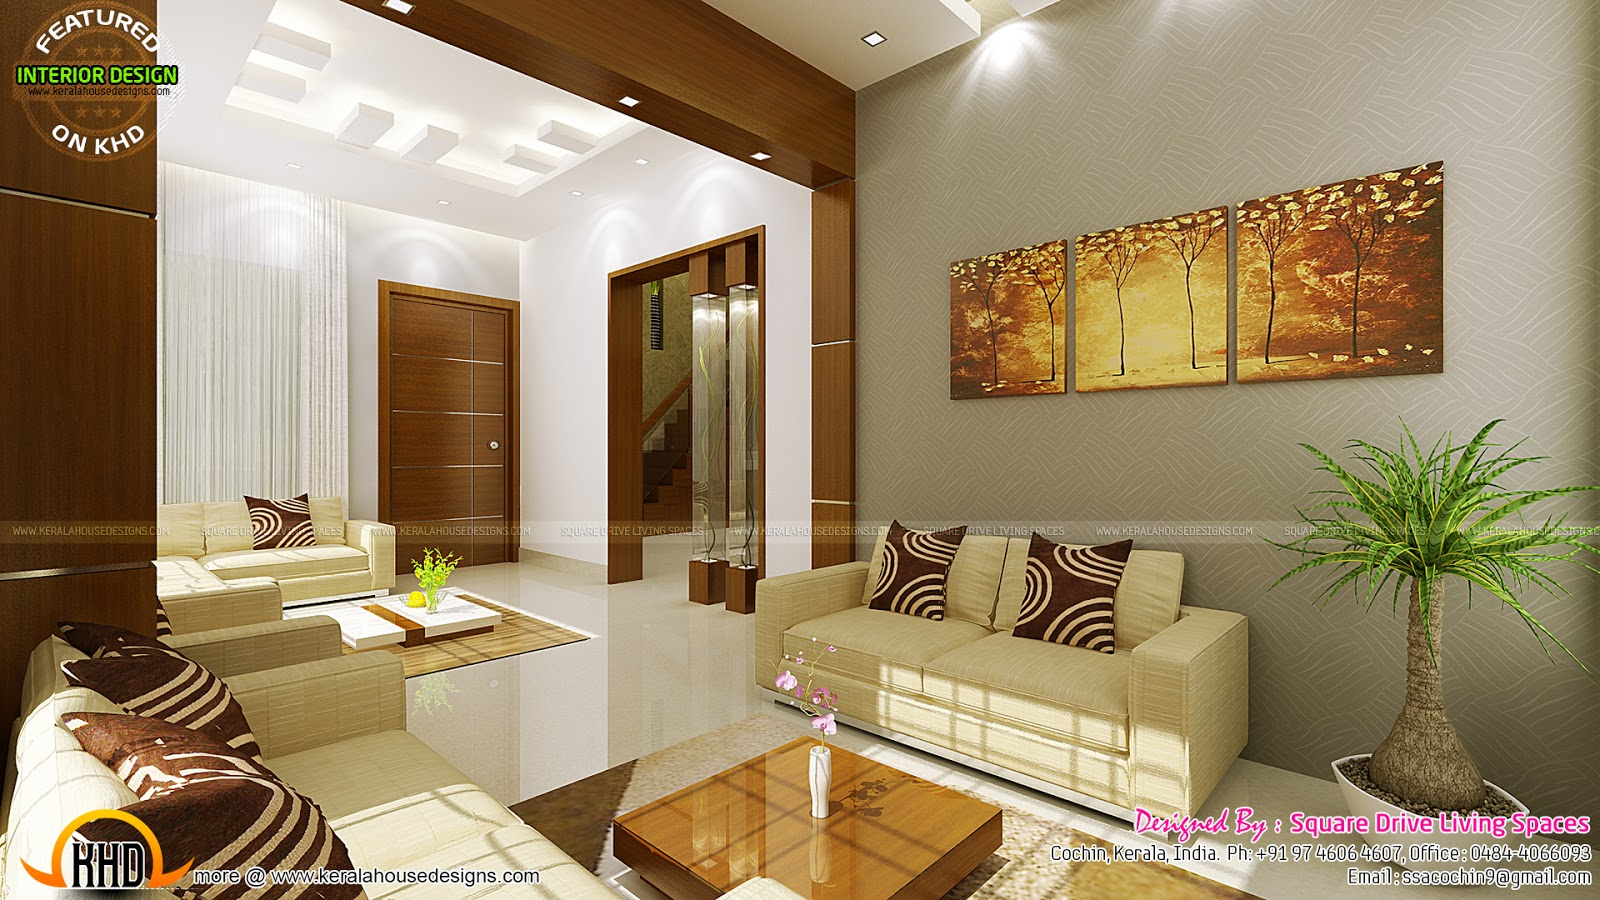 Contemporary kitchen dining and living room kerala home for Interior design your home